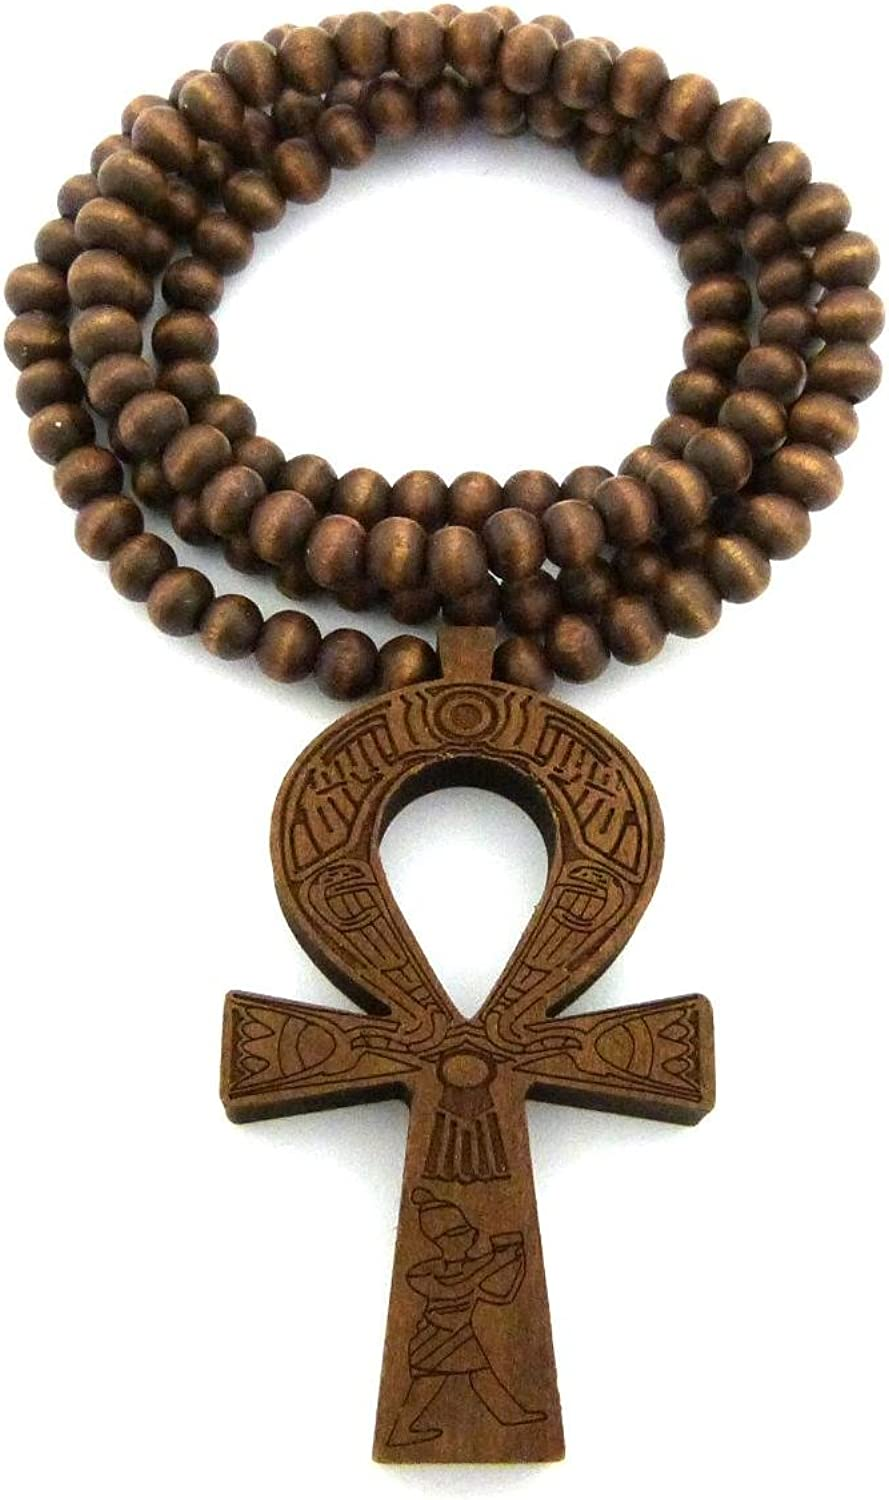 "Fashion 21 Egyptian Ankh Cross Pendant 6mm 27"" Stretchable Wooden Bead Necklace (3 Colors Available)"